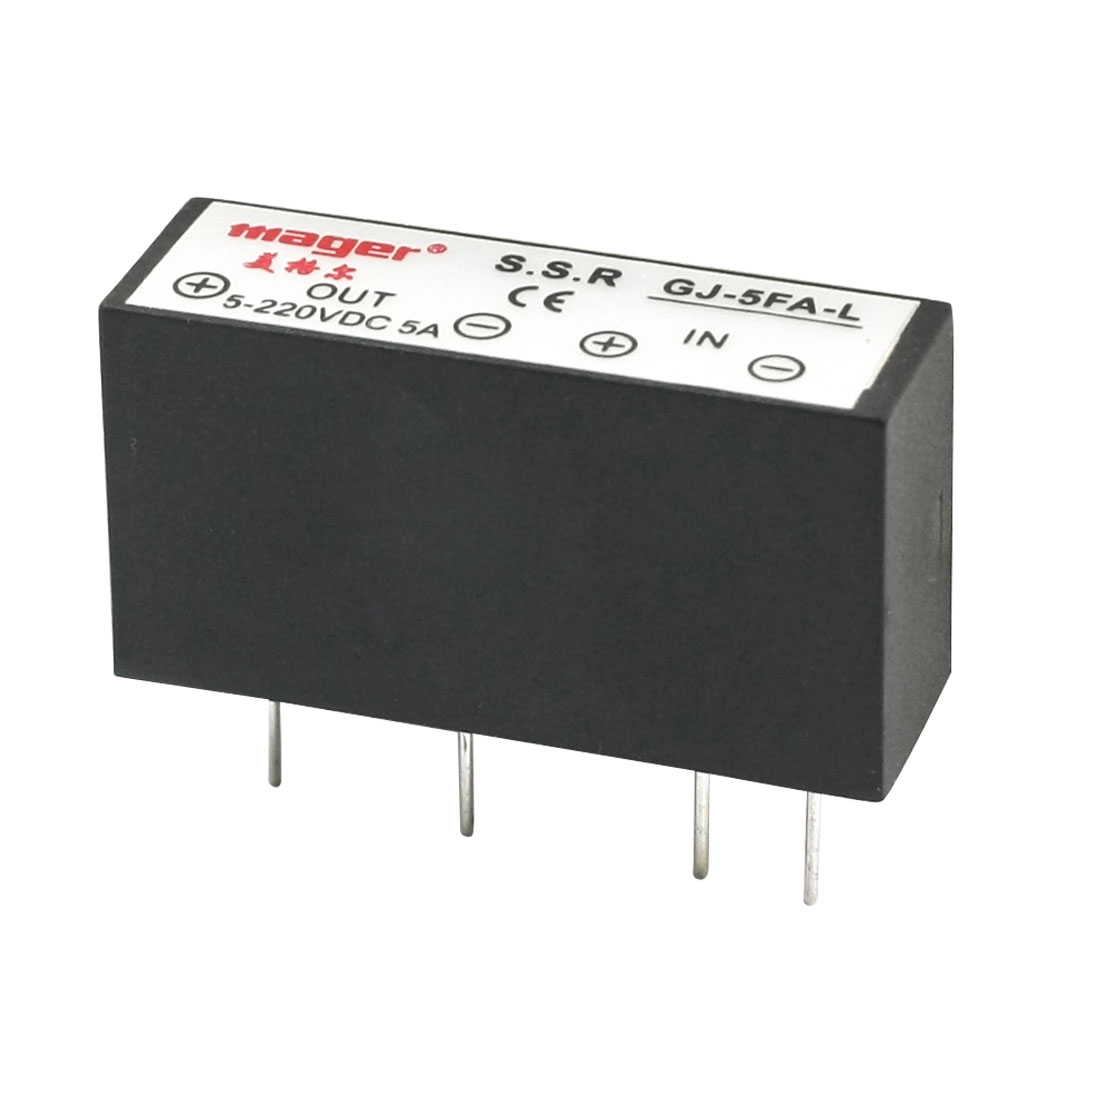 GJ-5FA-L DC-DC 3-32V 5-220V 5A 4Pin PCB Through Hole Mounting Normal Open Single Phase Rectangle SSR Solid State Relay